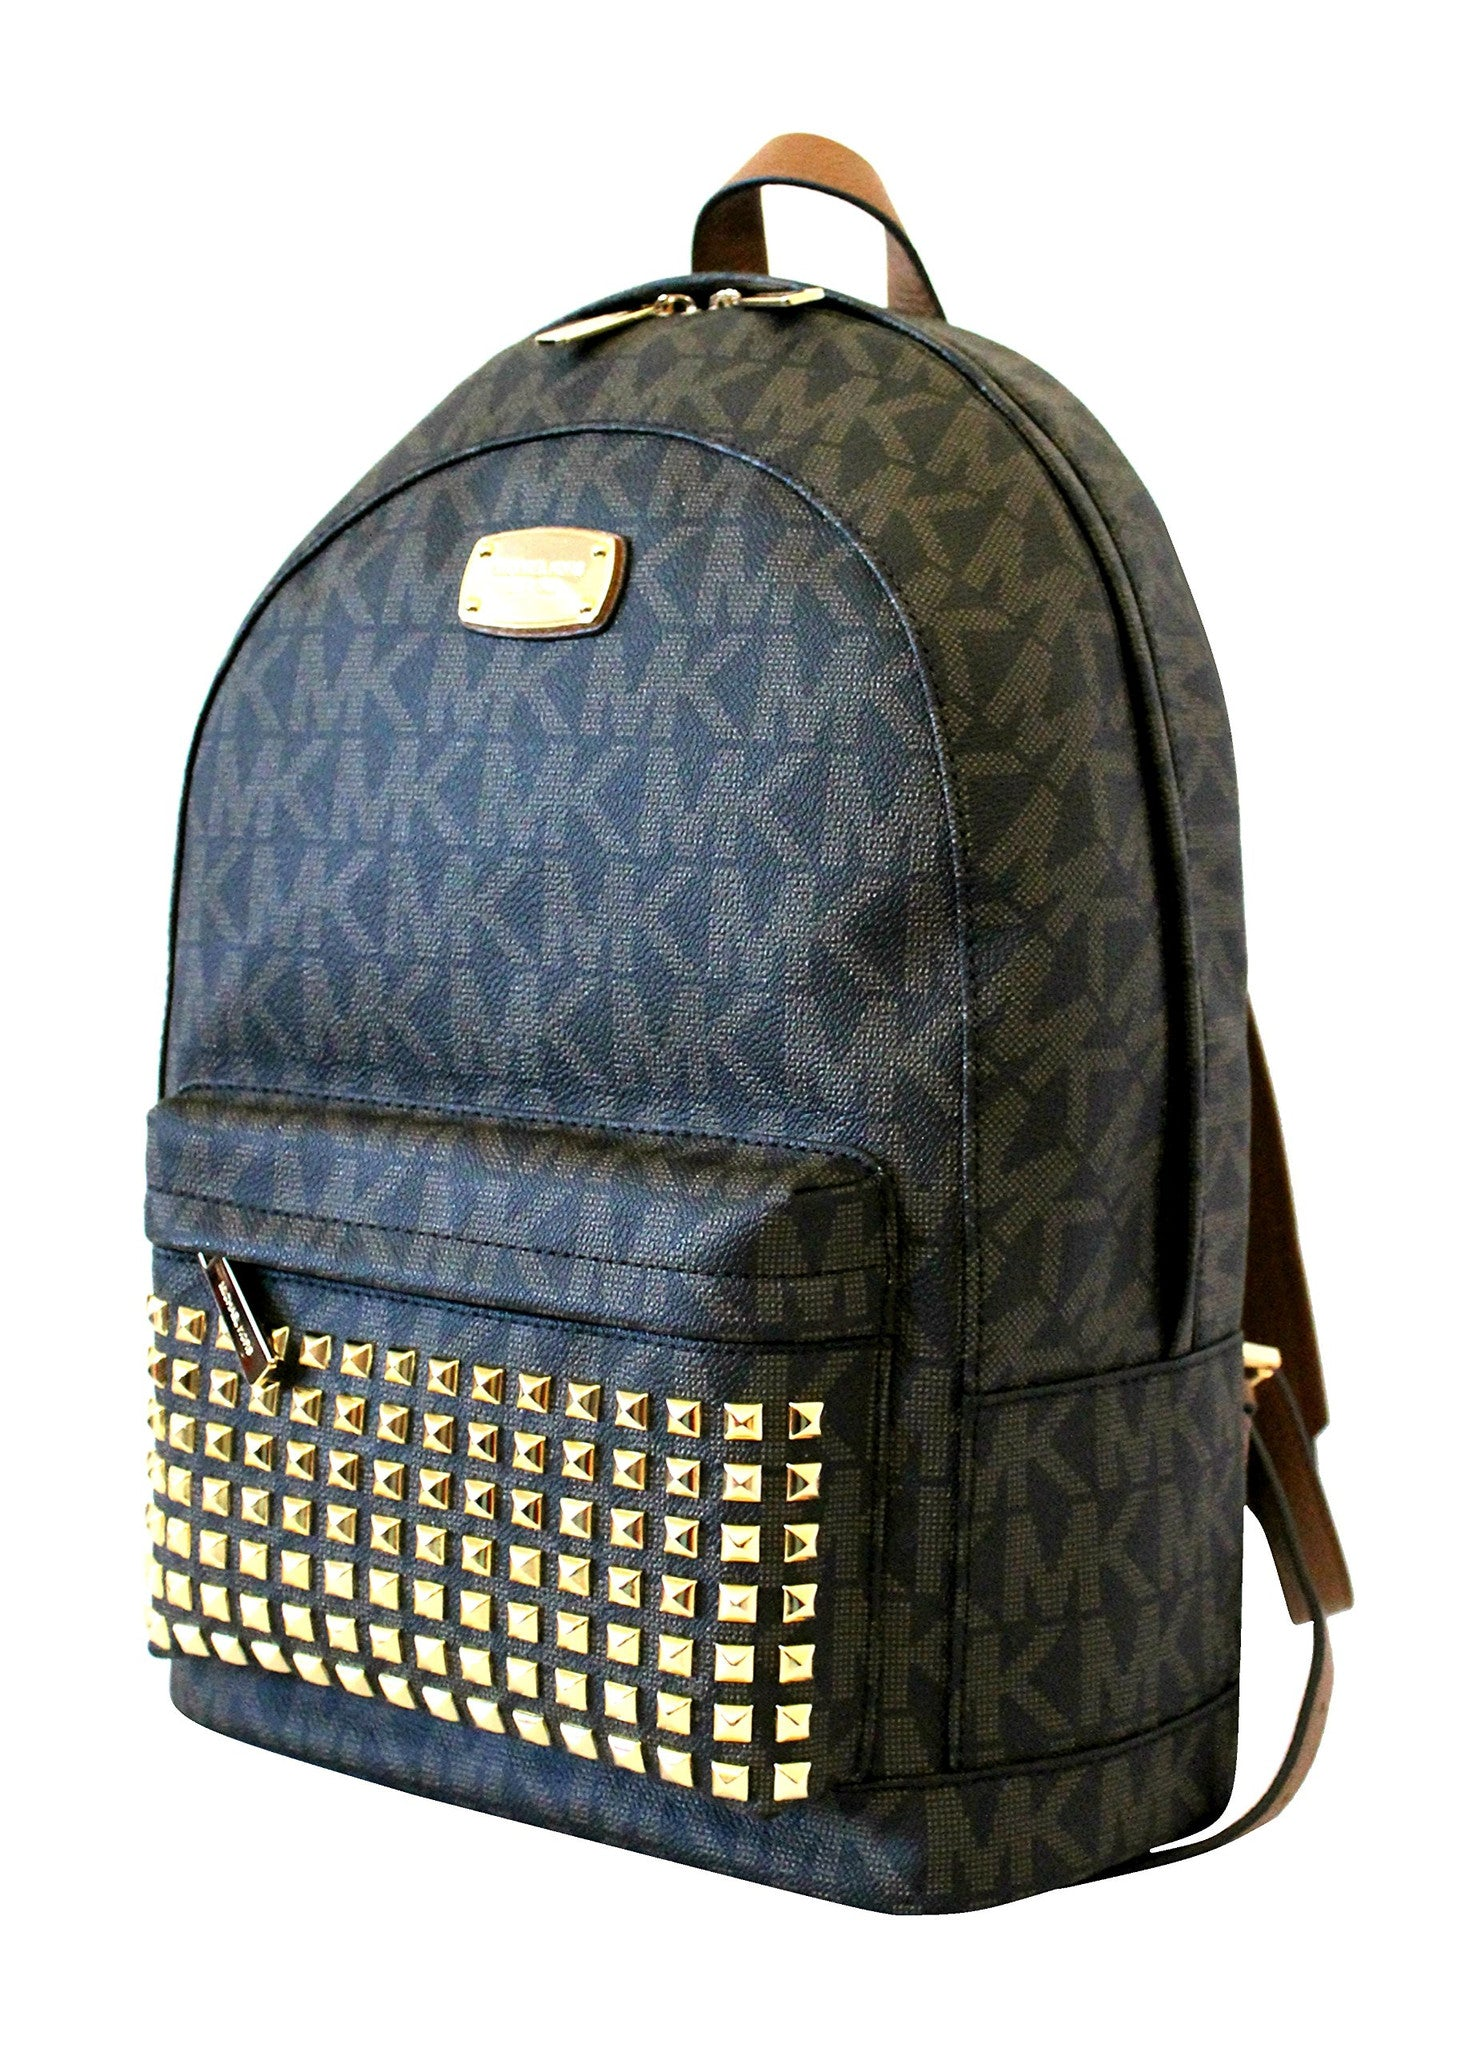 125864bf9334 Michael Kors Large Backpack Printed Mk Studded Jet Set - Watchcove